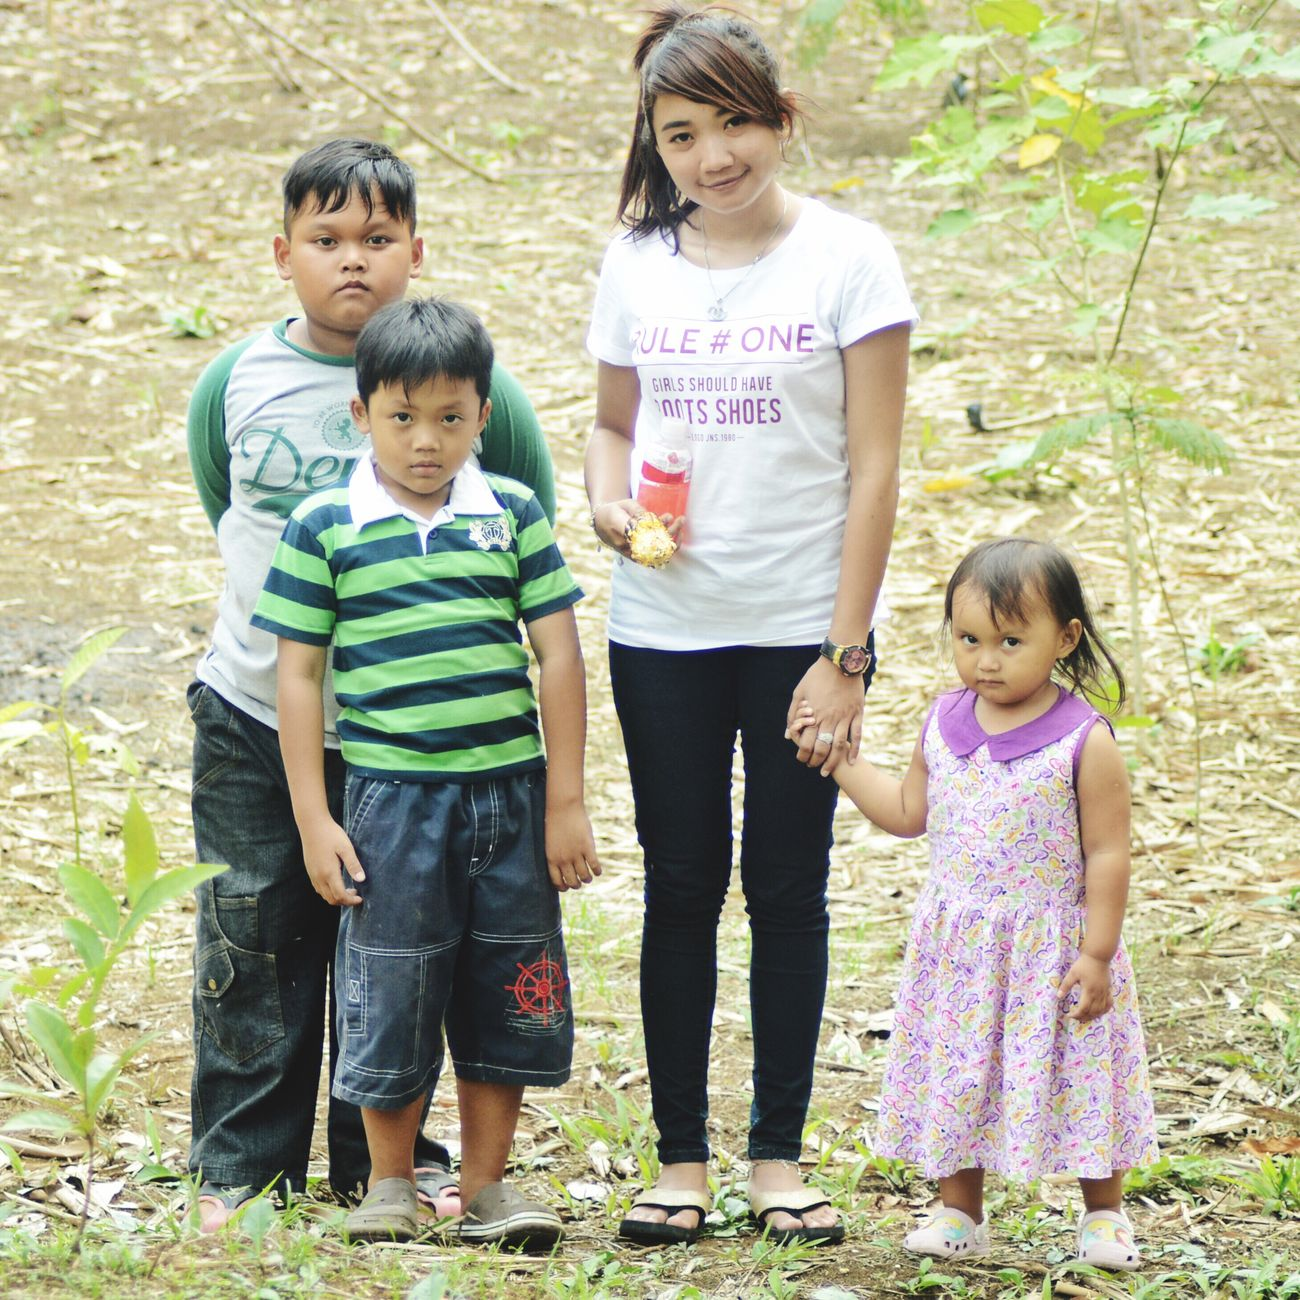 Girl Asian Girl Childrens Childrenphoto Children Playing In The Garden Verydelighted Upee, Raffa, Kevin and A'el INDONESIA, SUKABUMI